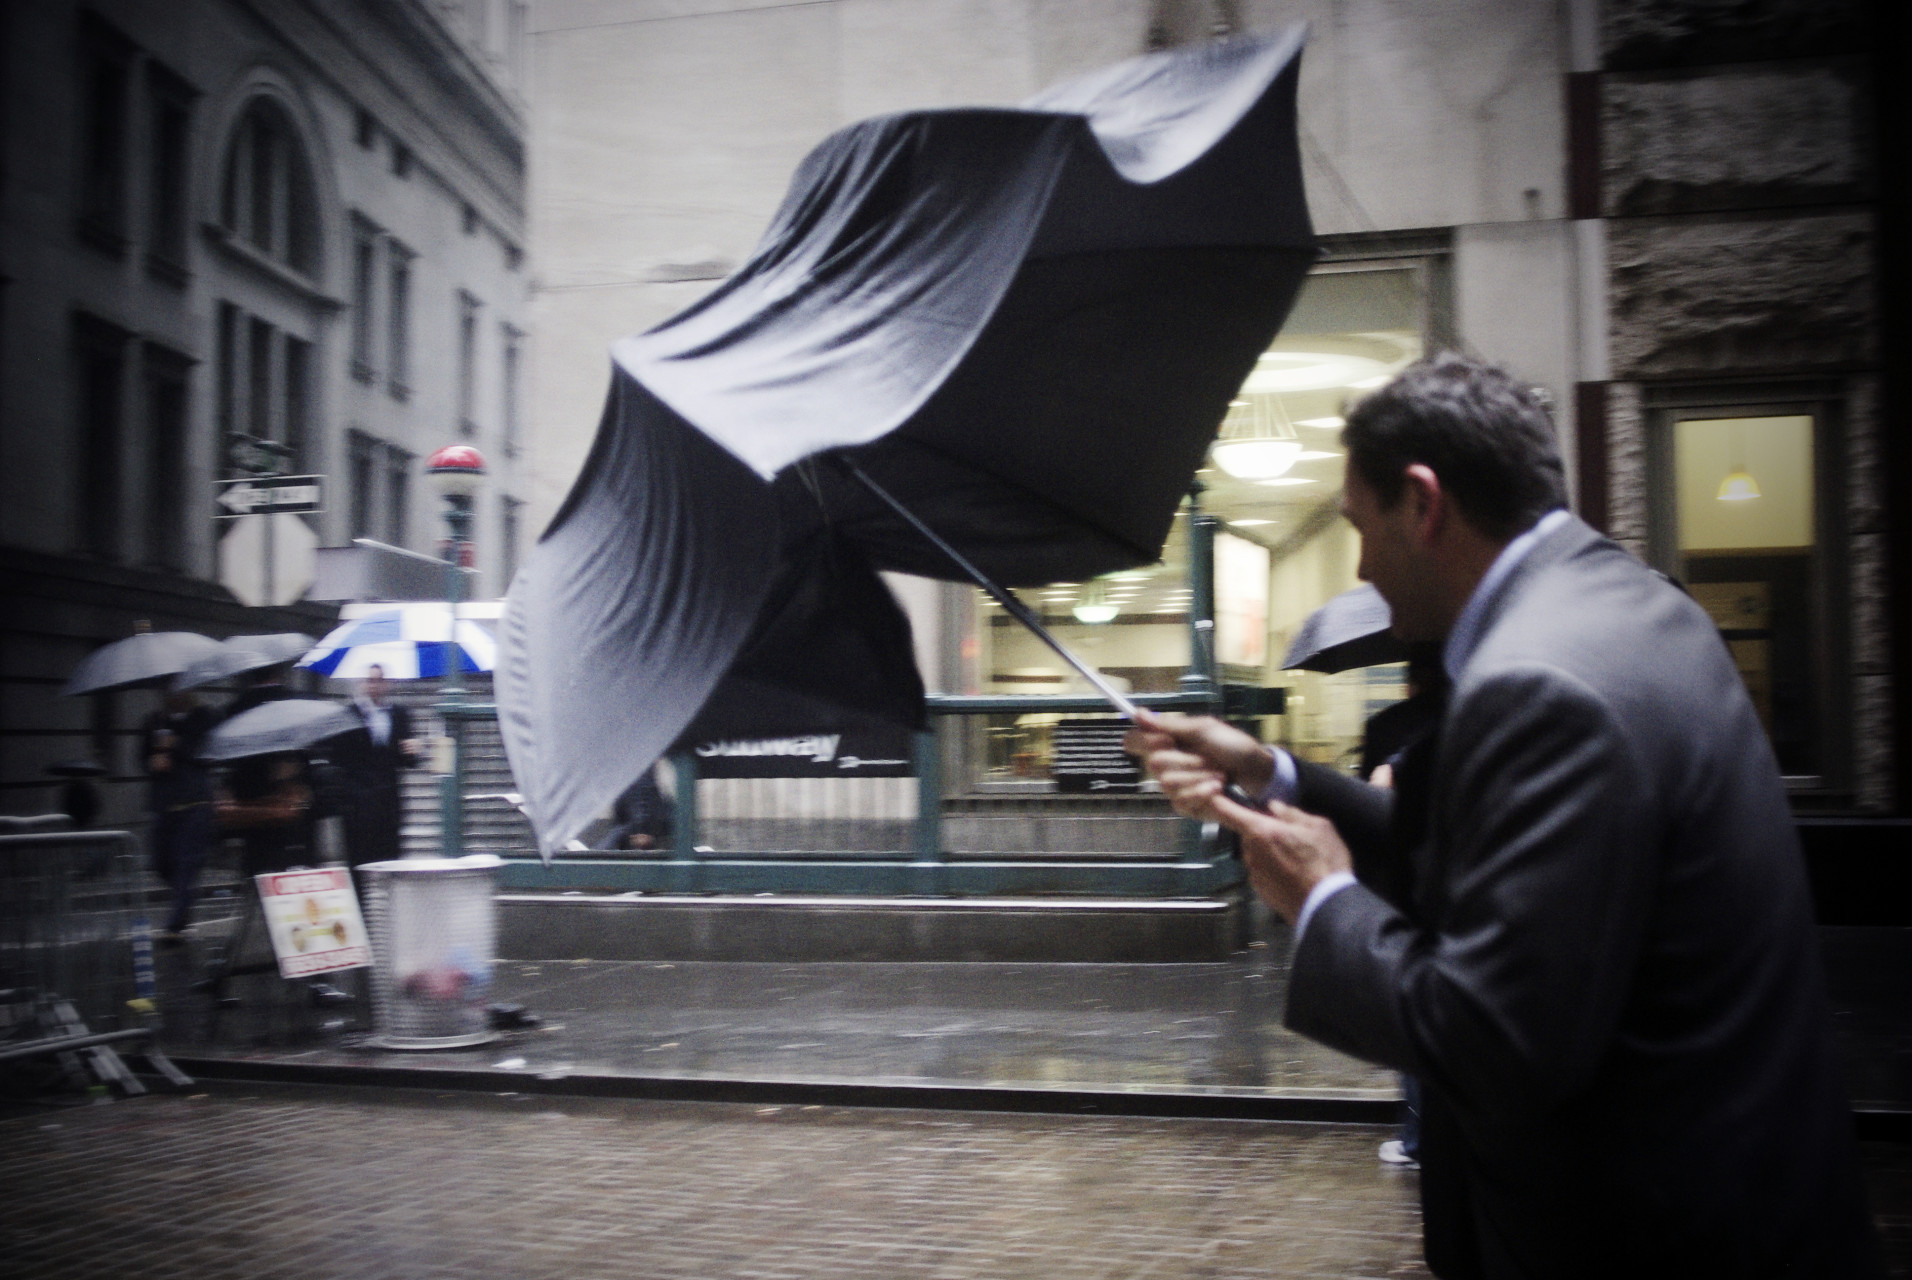 Man-with-ripped-umbrella-Wall-Street-New-York_IGP3591b